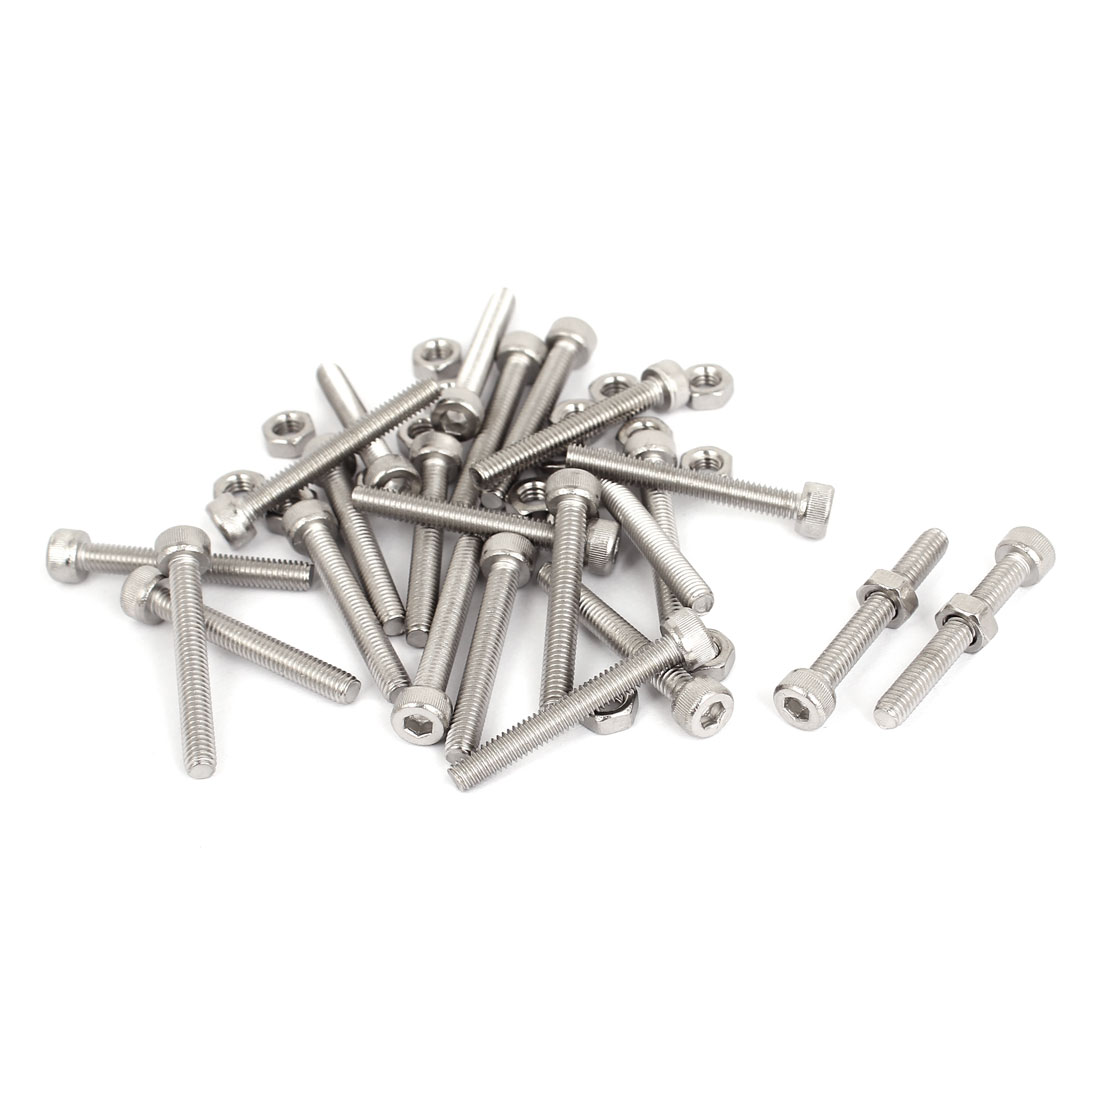 M4x30mm Stainless Steel Hex Socket Head Knurled Cap Screws Bolts Nut Set 20Pcs